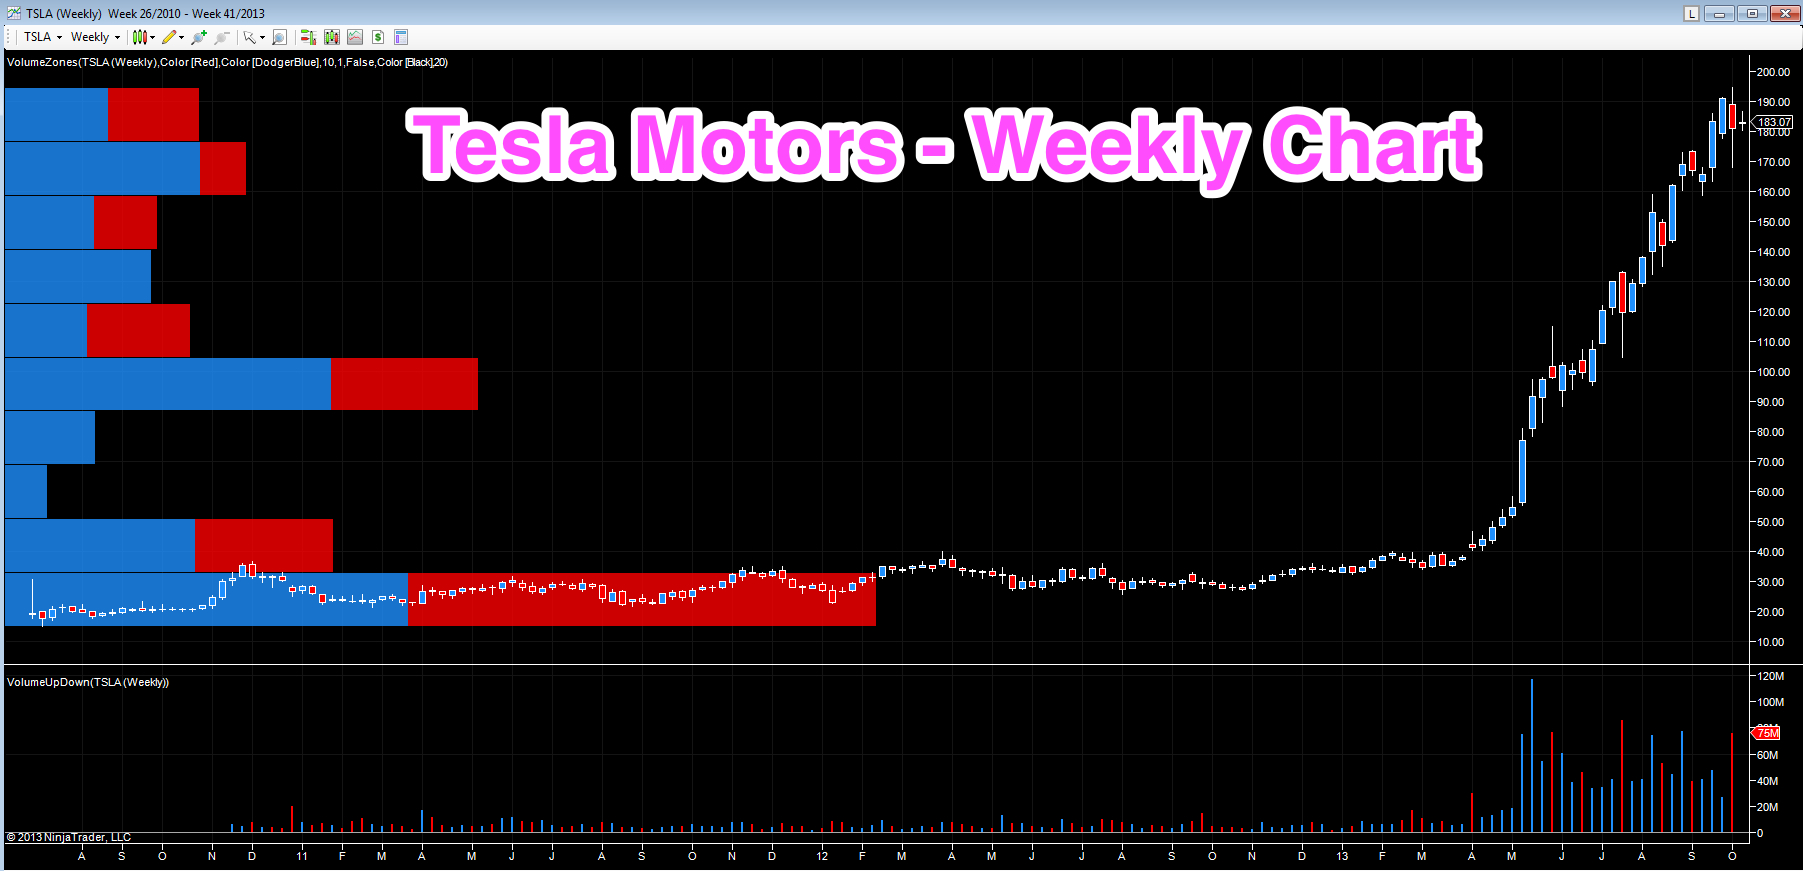 Tesla - stock price on the weekly chart